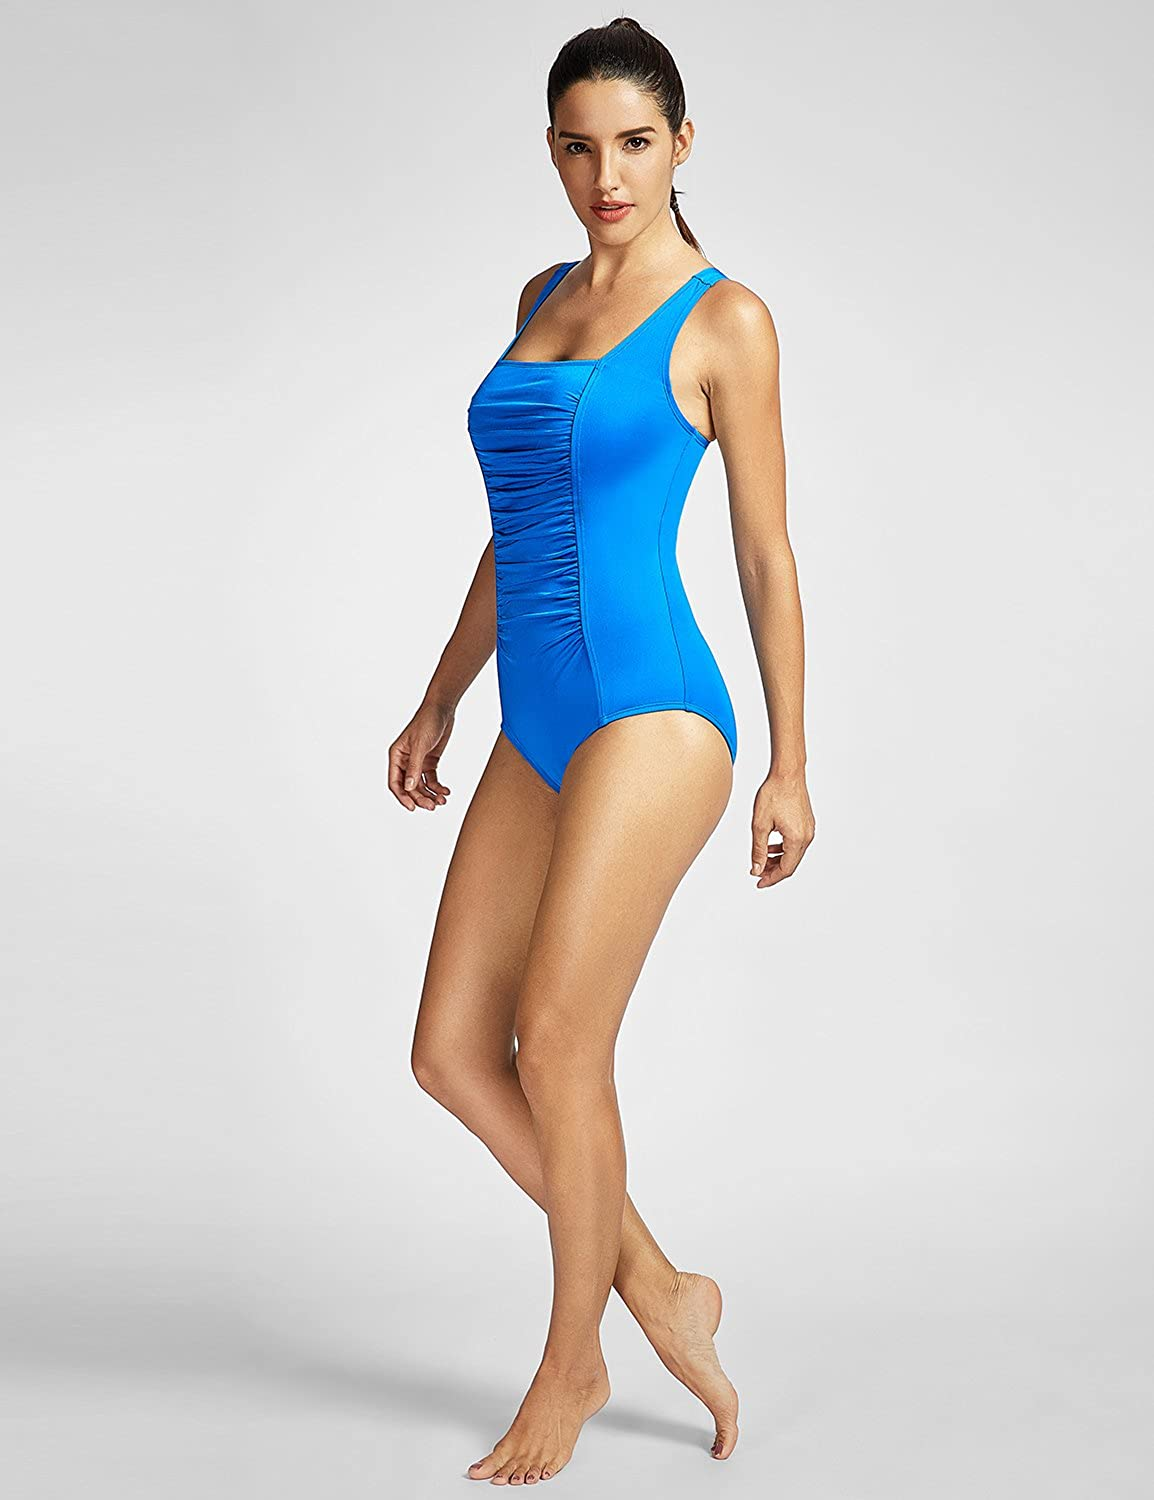 71b3e0fcdbfe SYROKAN Women s Maillot Shirred Tummy Control Athletic Training One Piece  Swimsuits larger image